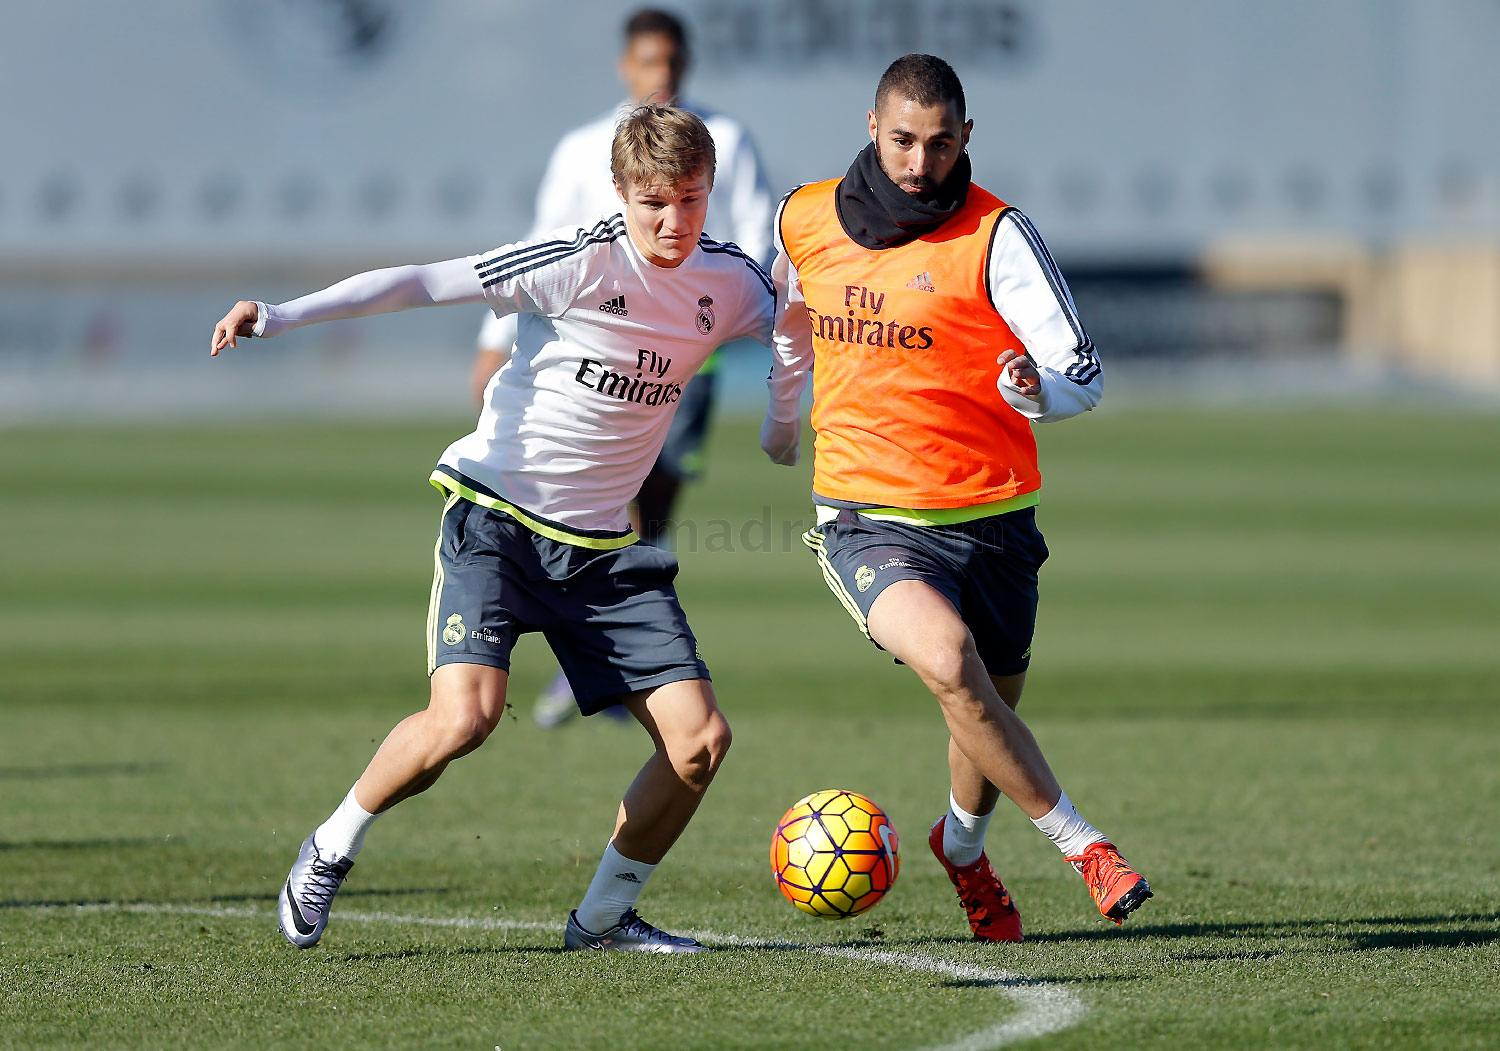 Real Madrid - Entrenamiento del Real Madrid - 03-12-2015